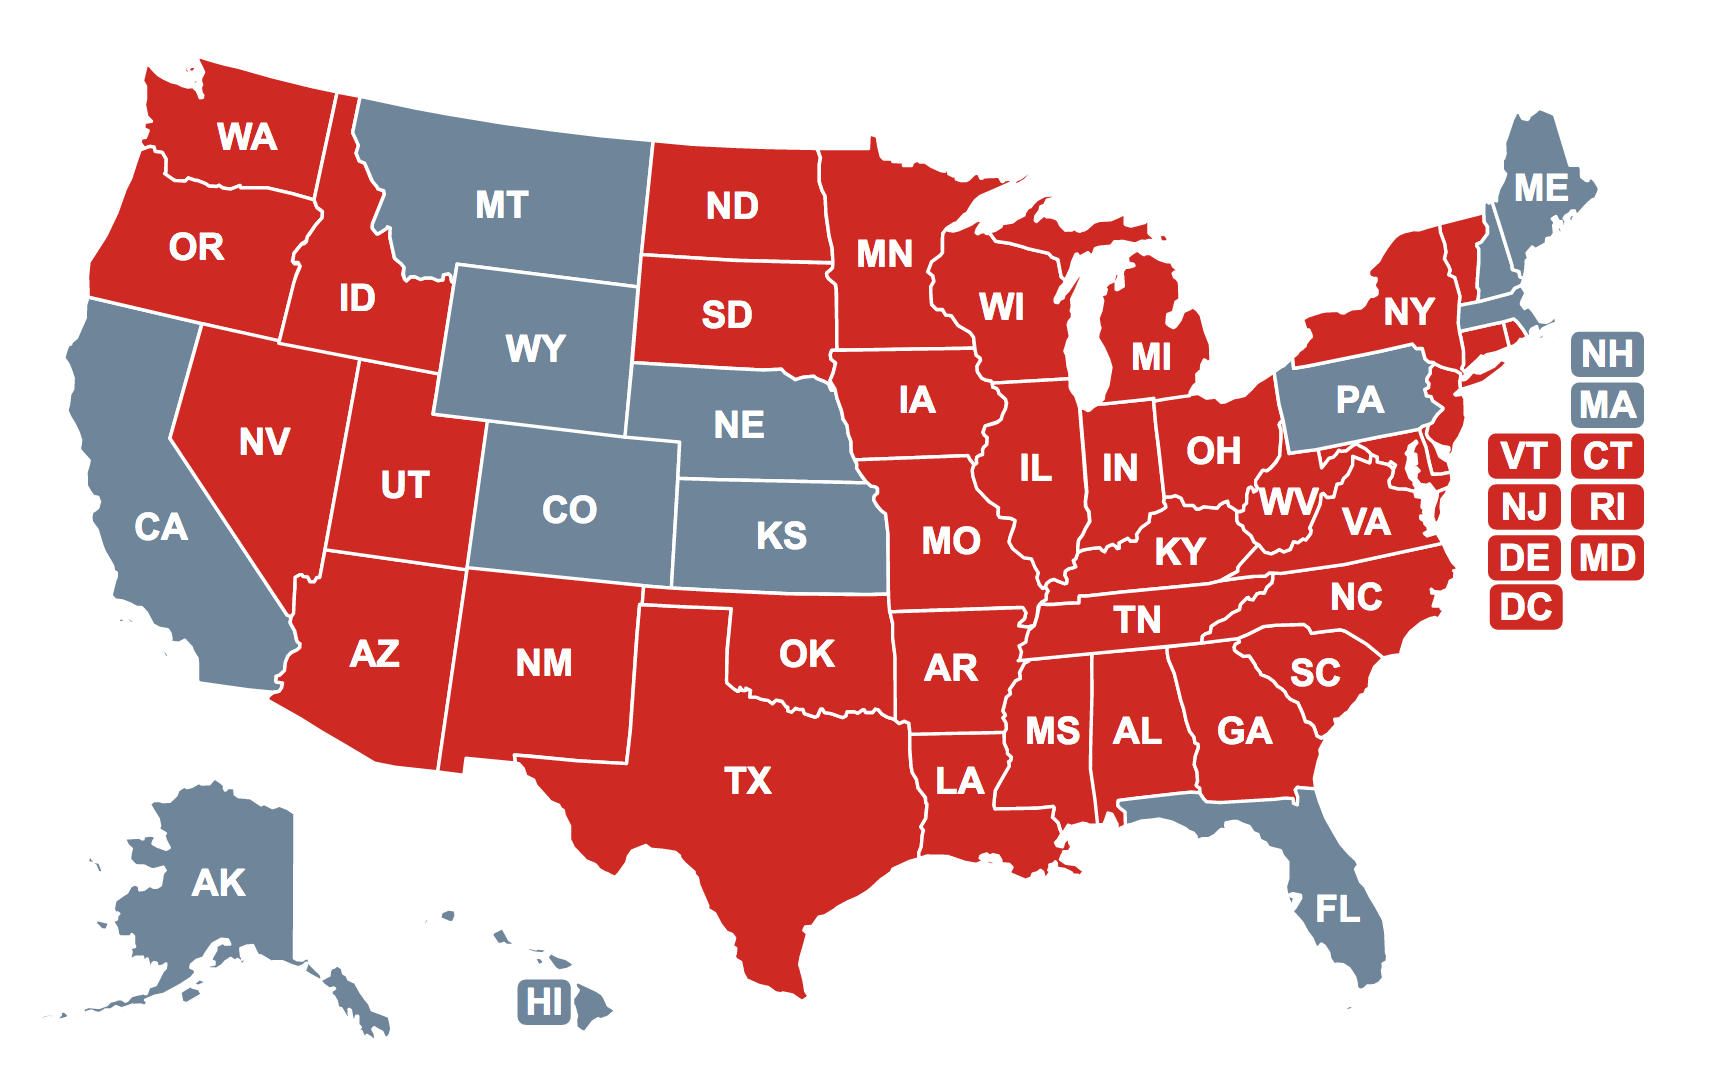 States requiring CPR education by high school graduation noted in red